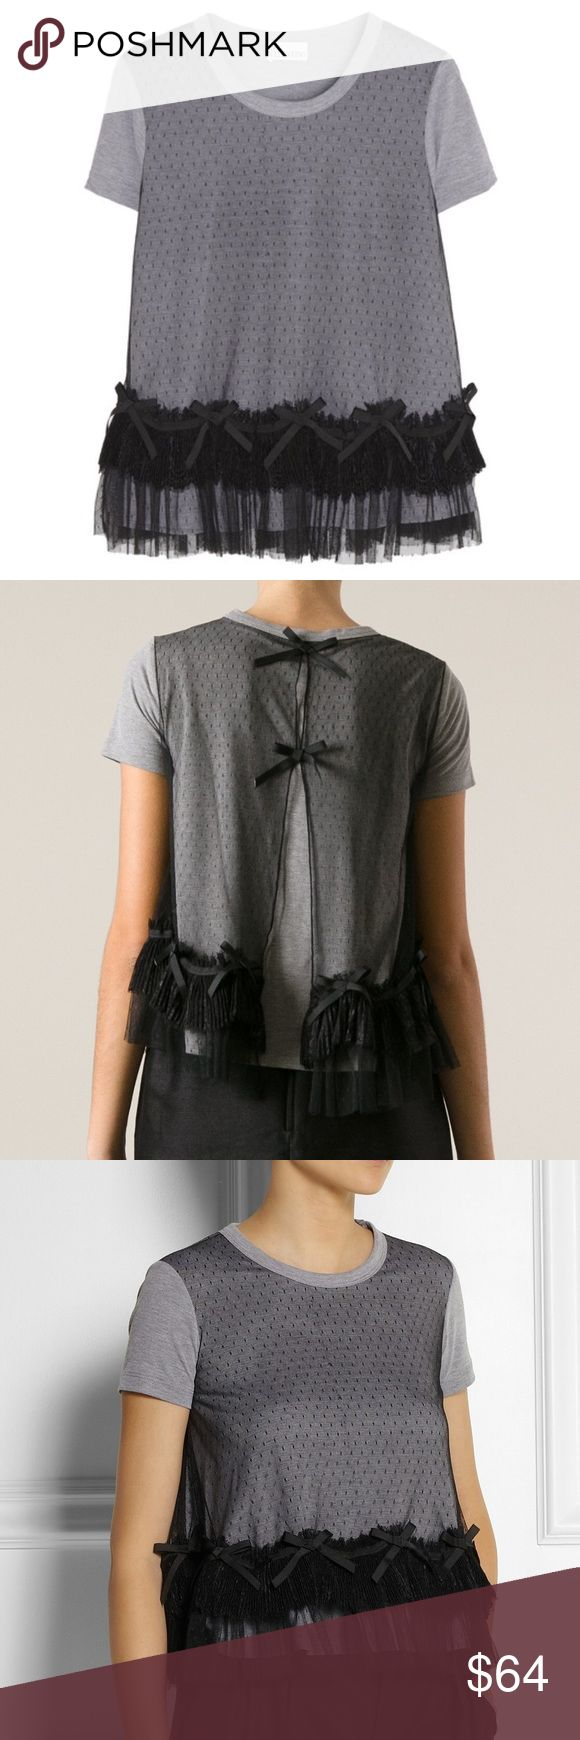 "Red Valentino gray black lace bow jersey shirt S Stunning women's Red Valentino Spa Gray t shirt with Black Swiss Dot lace/ bow details, size small. Excellent used condition!!! Pit to pit-17"" length- 22"" RED Valentino Tops Blouses"